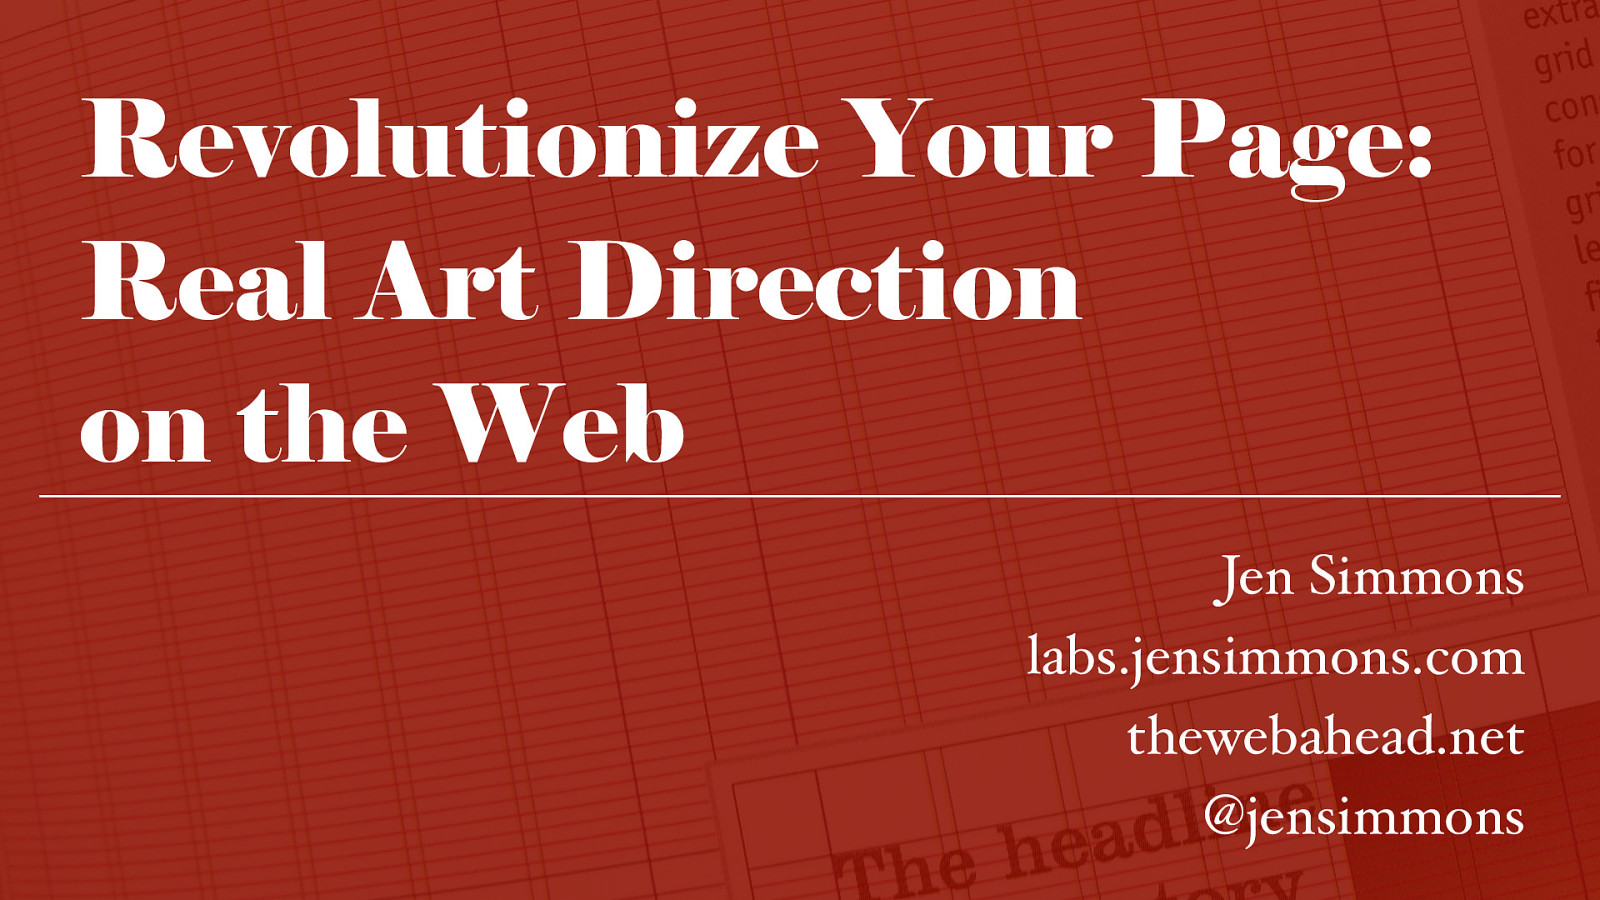 Revolutionize Your Page: Real Art Direction on the Web